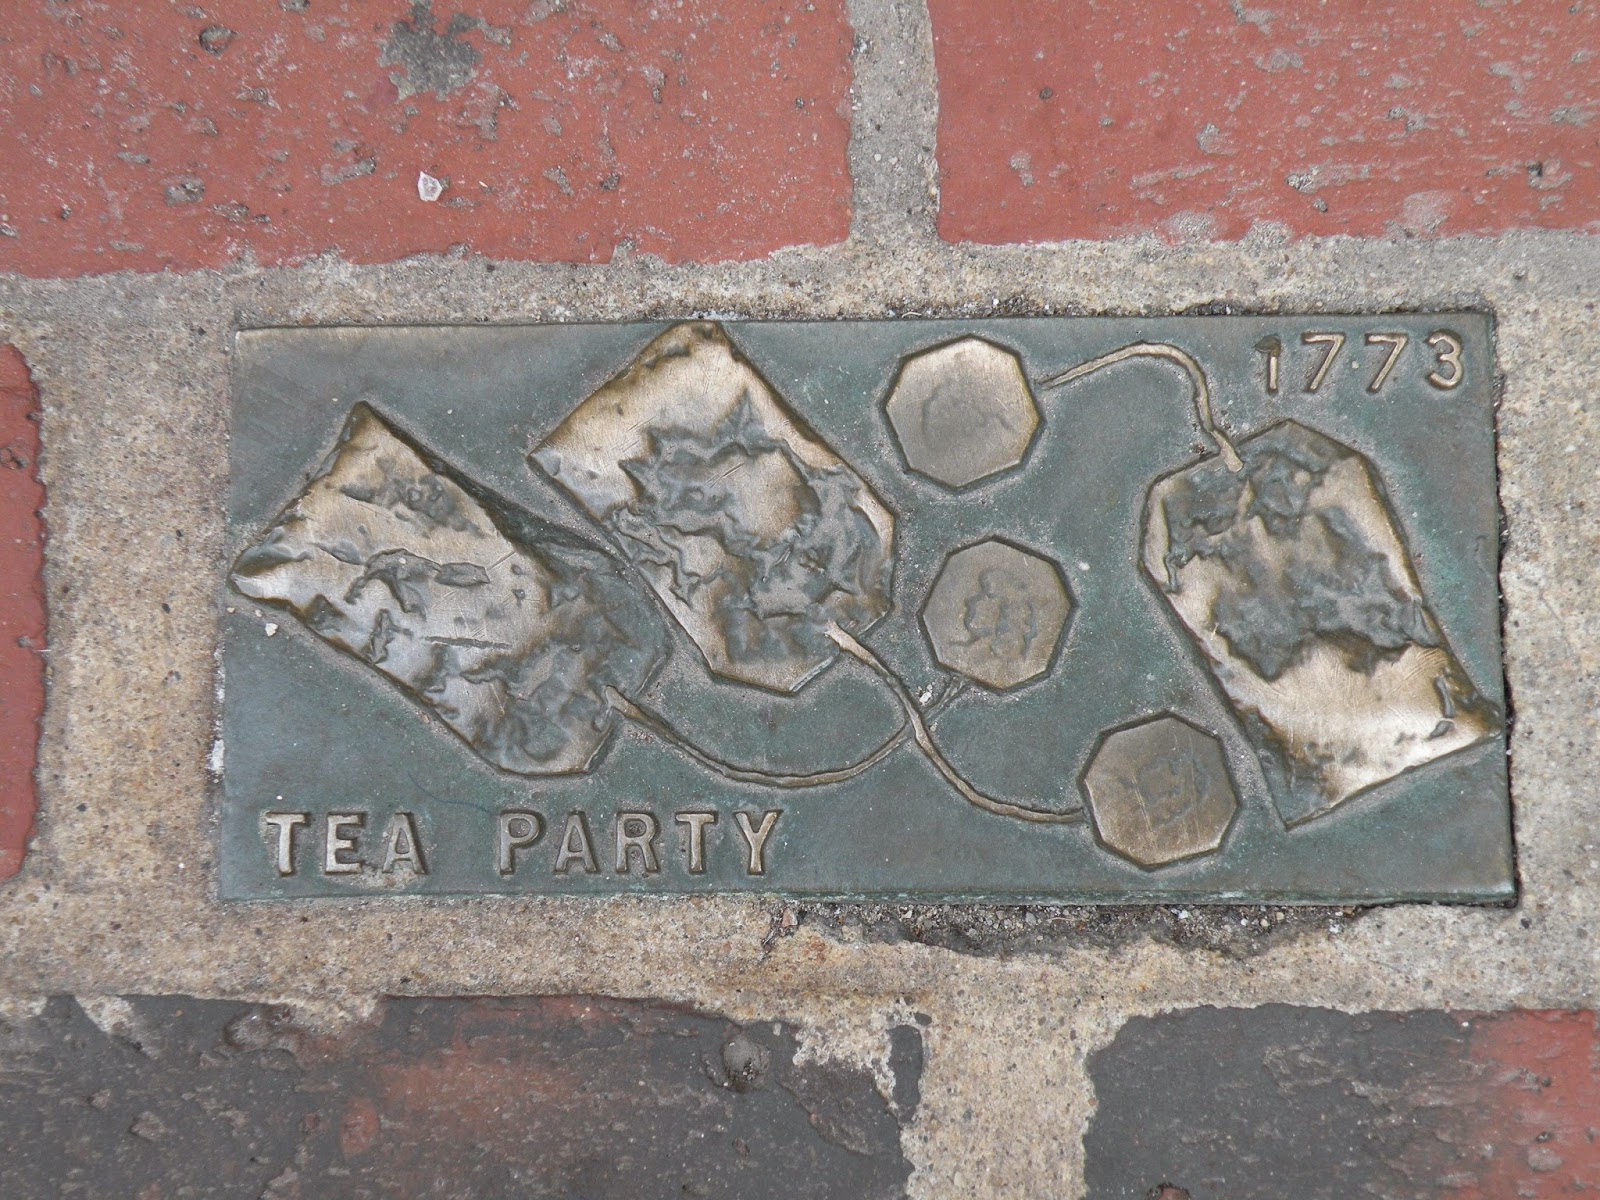 Boston Tea Party 1773 brick monument